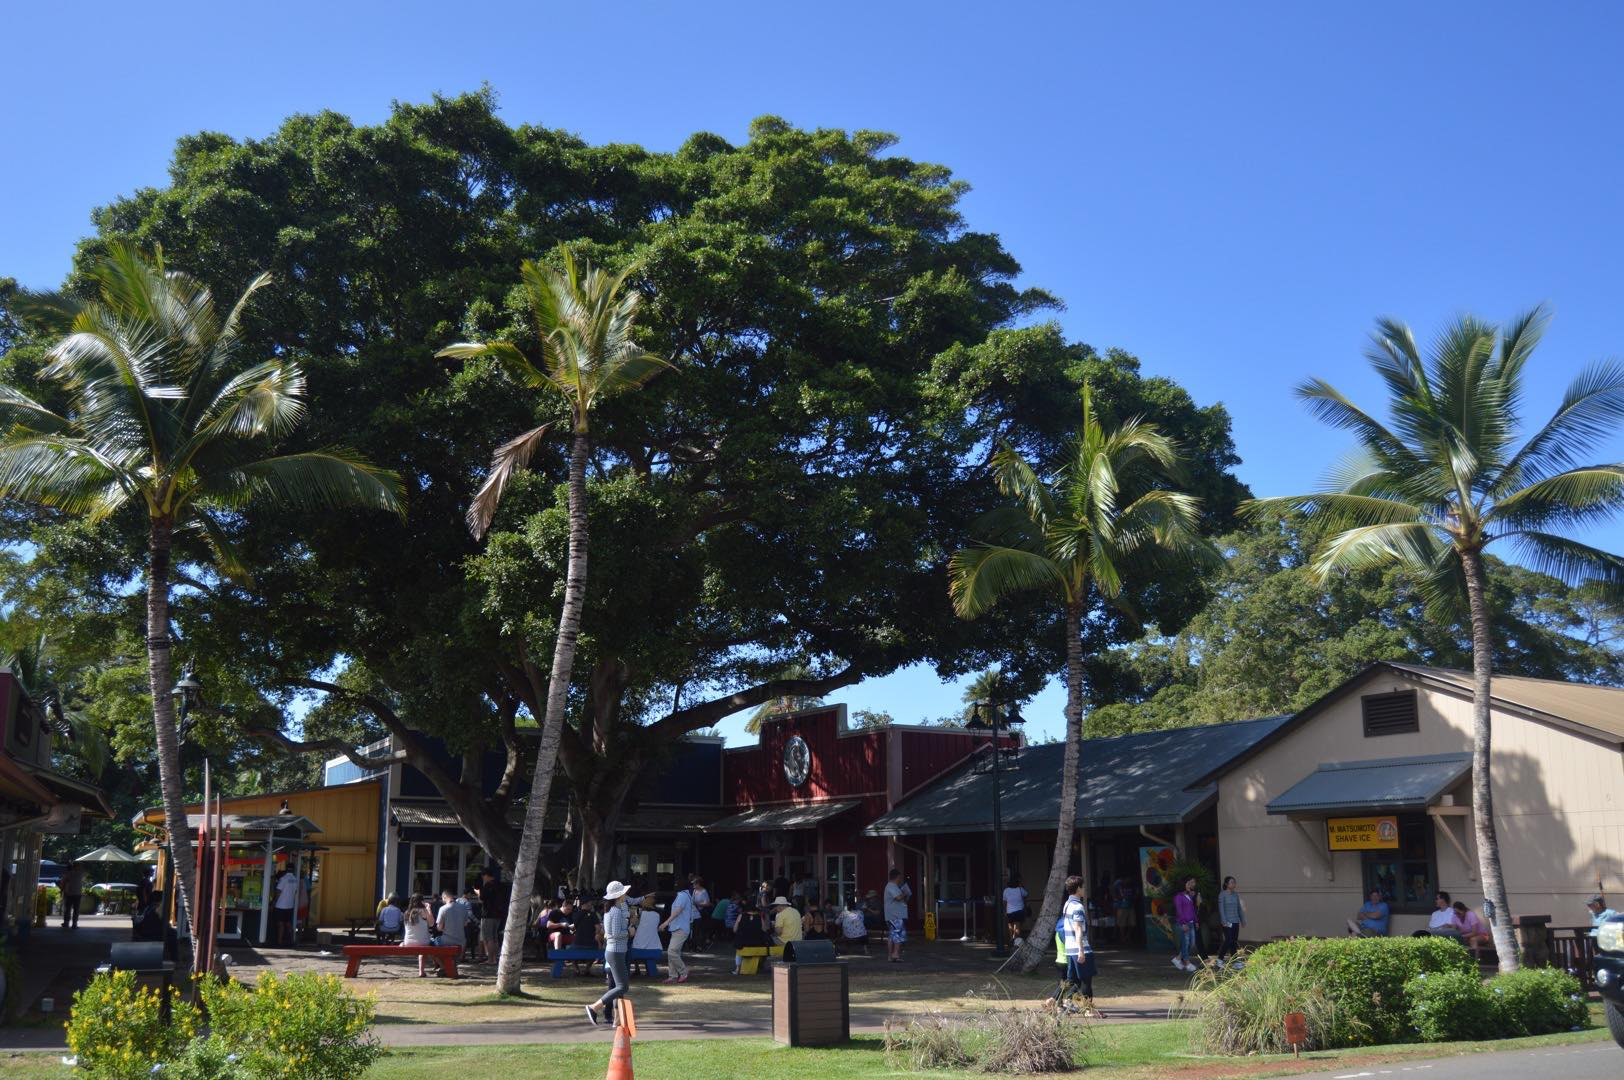 North Shore Marketplace in Oahu, Hawaii